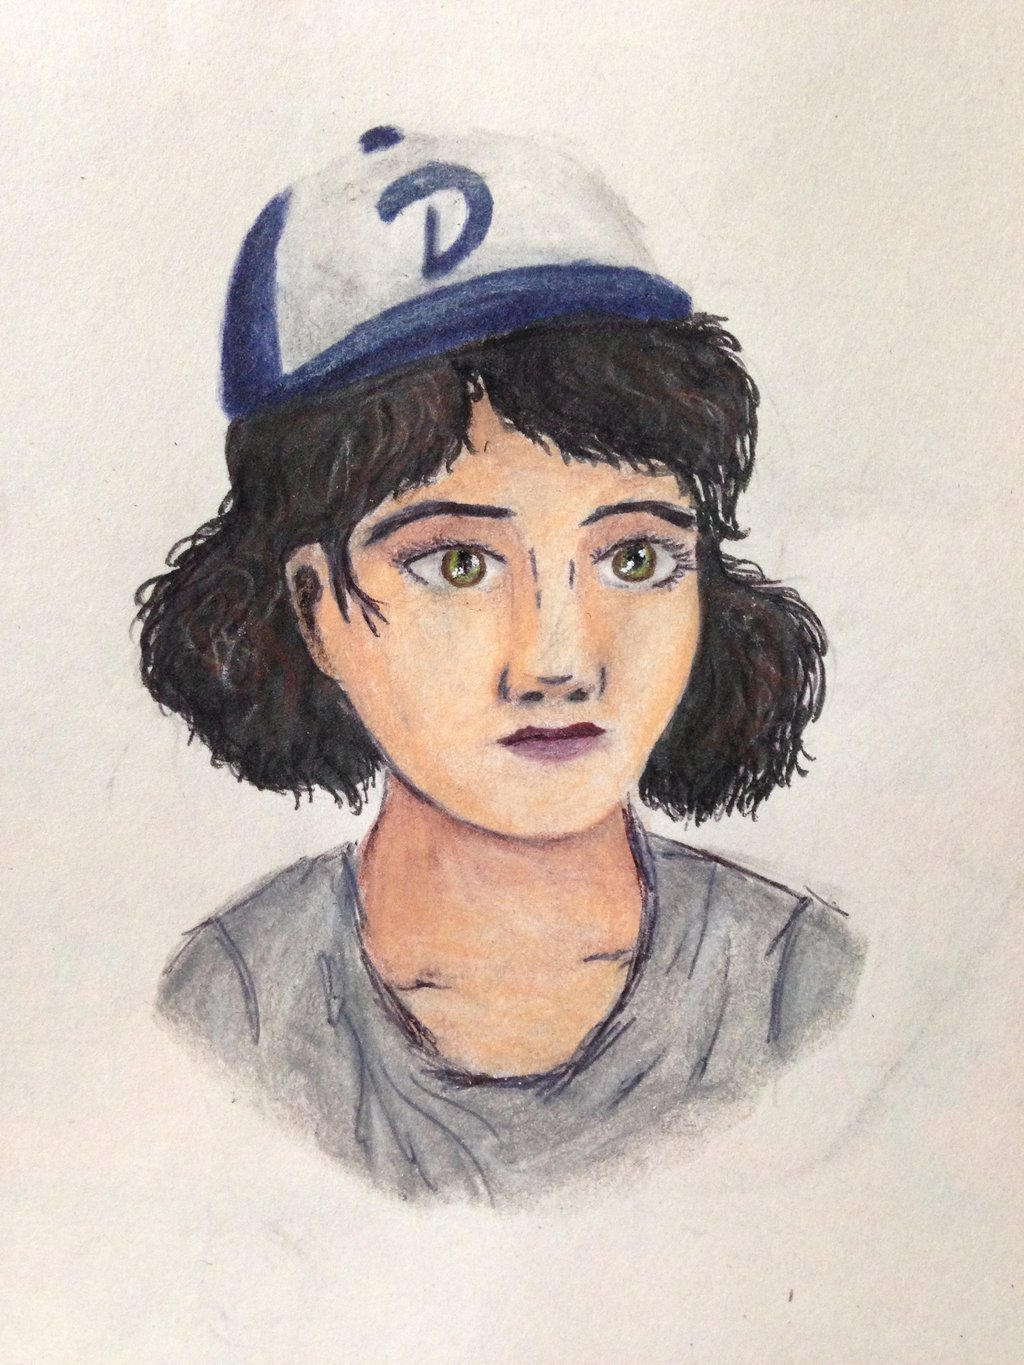 Clementine by swiftcross